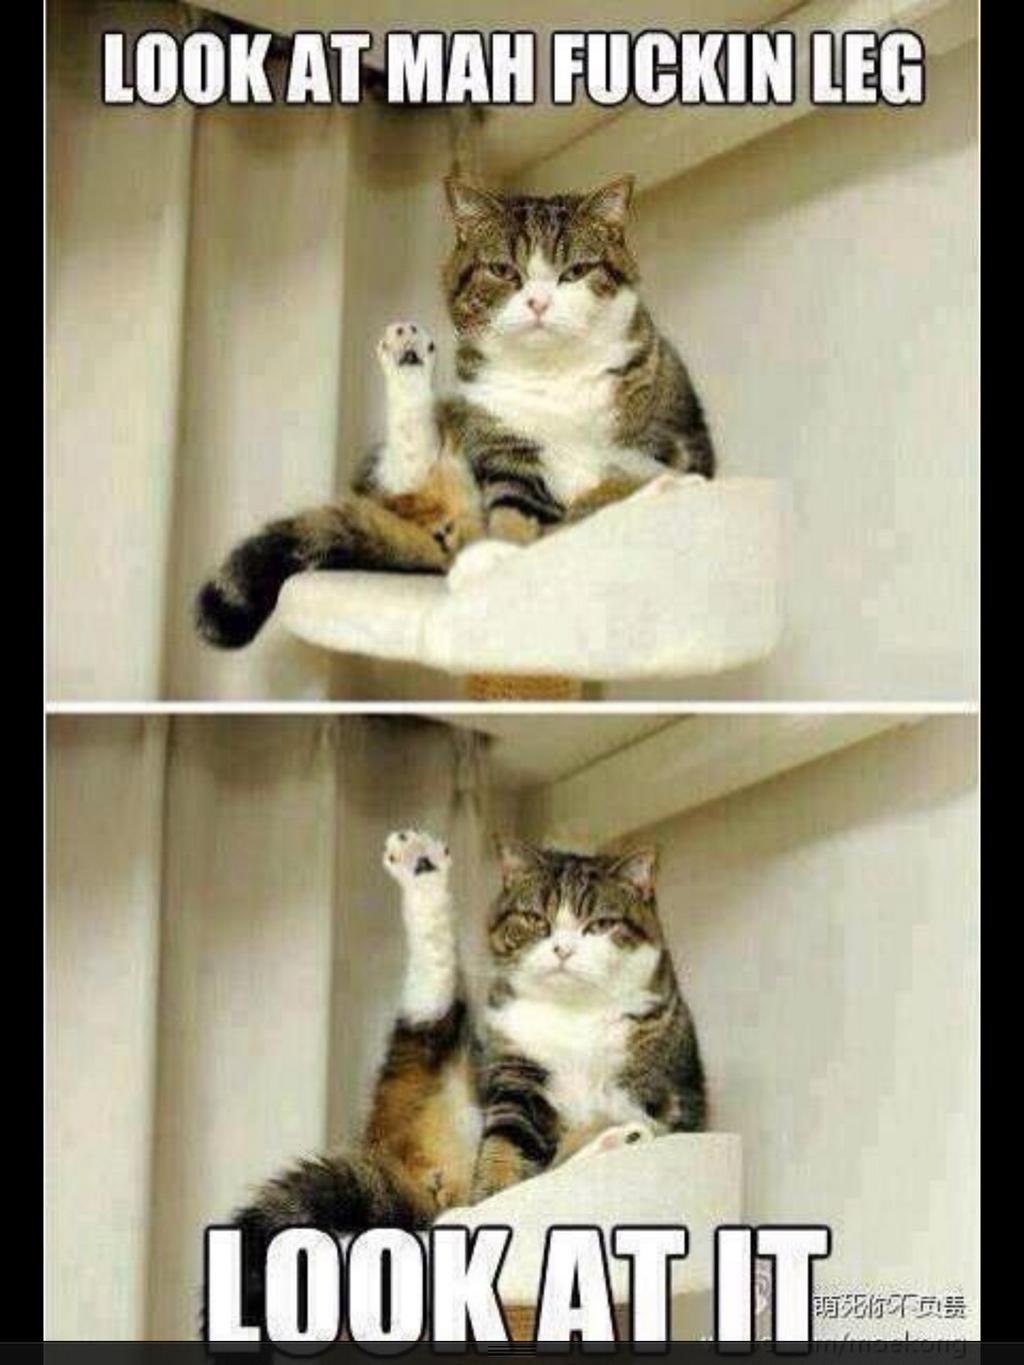 Me after I've taken the time to shave my legs .... http://t.co/8DDy6j6KK4